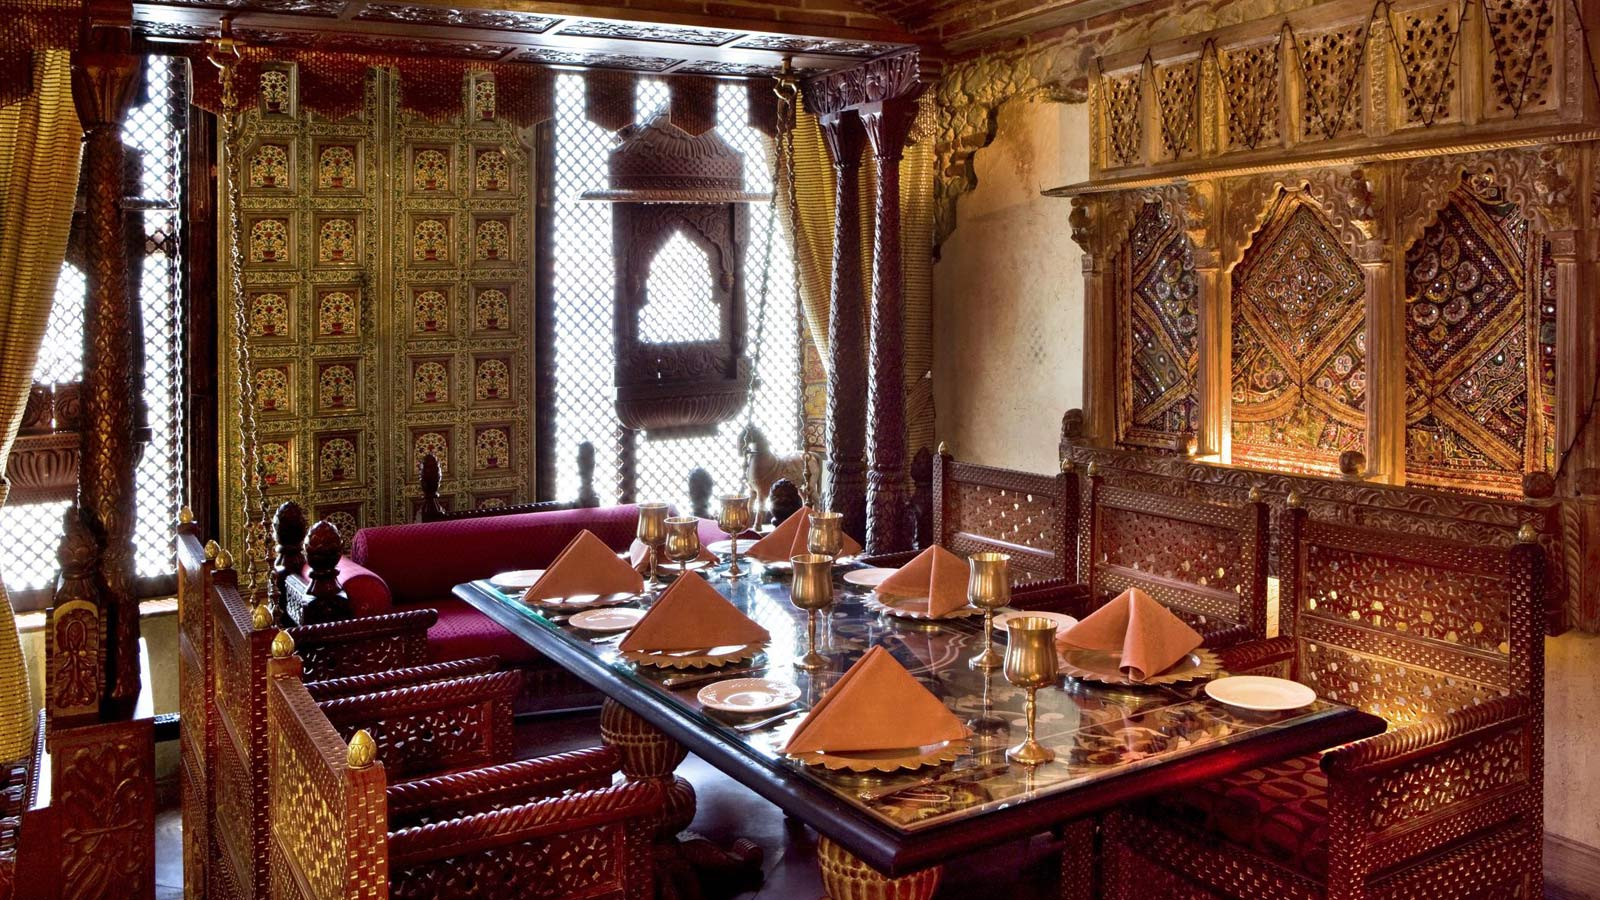 Antique bazaar authentic indian restaurant award wining indian restaurant bur dubai four Grand home furniture dubai